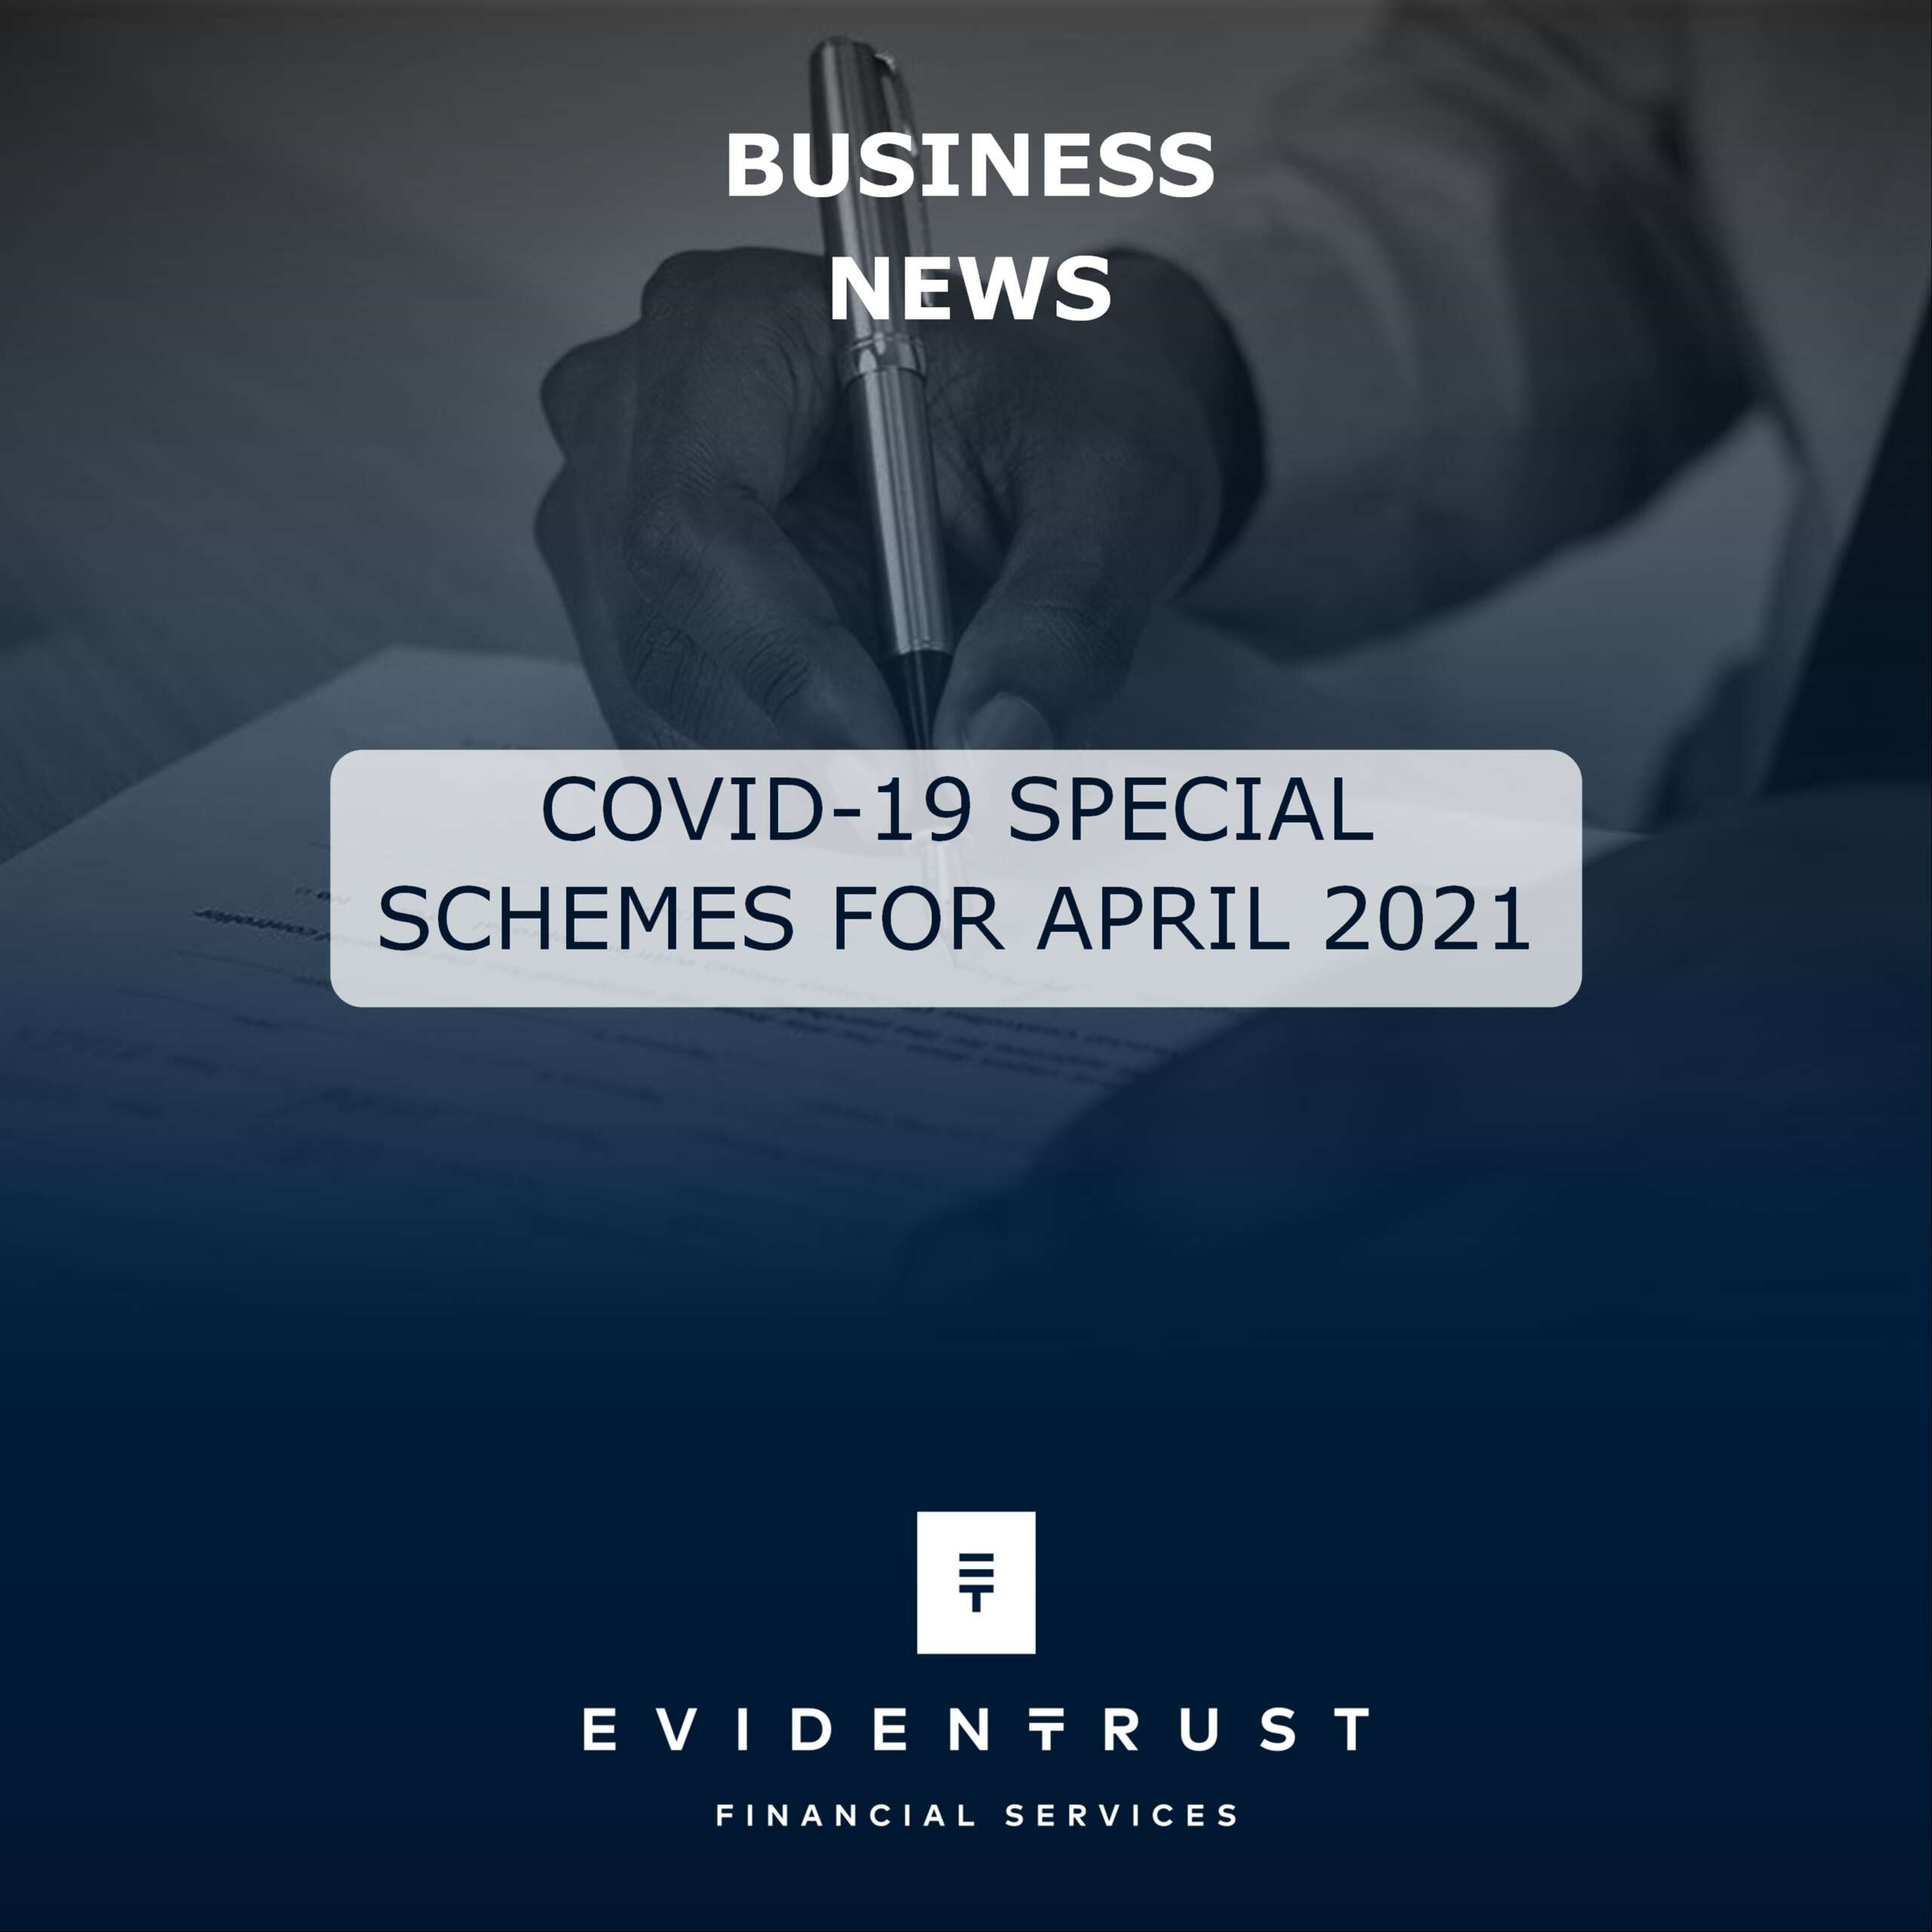 COVID-19 SPECIAL SCHEMES FOR APRIL 2021